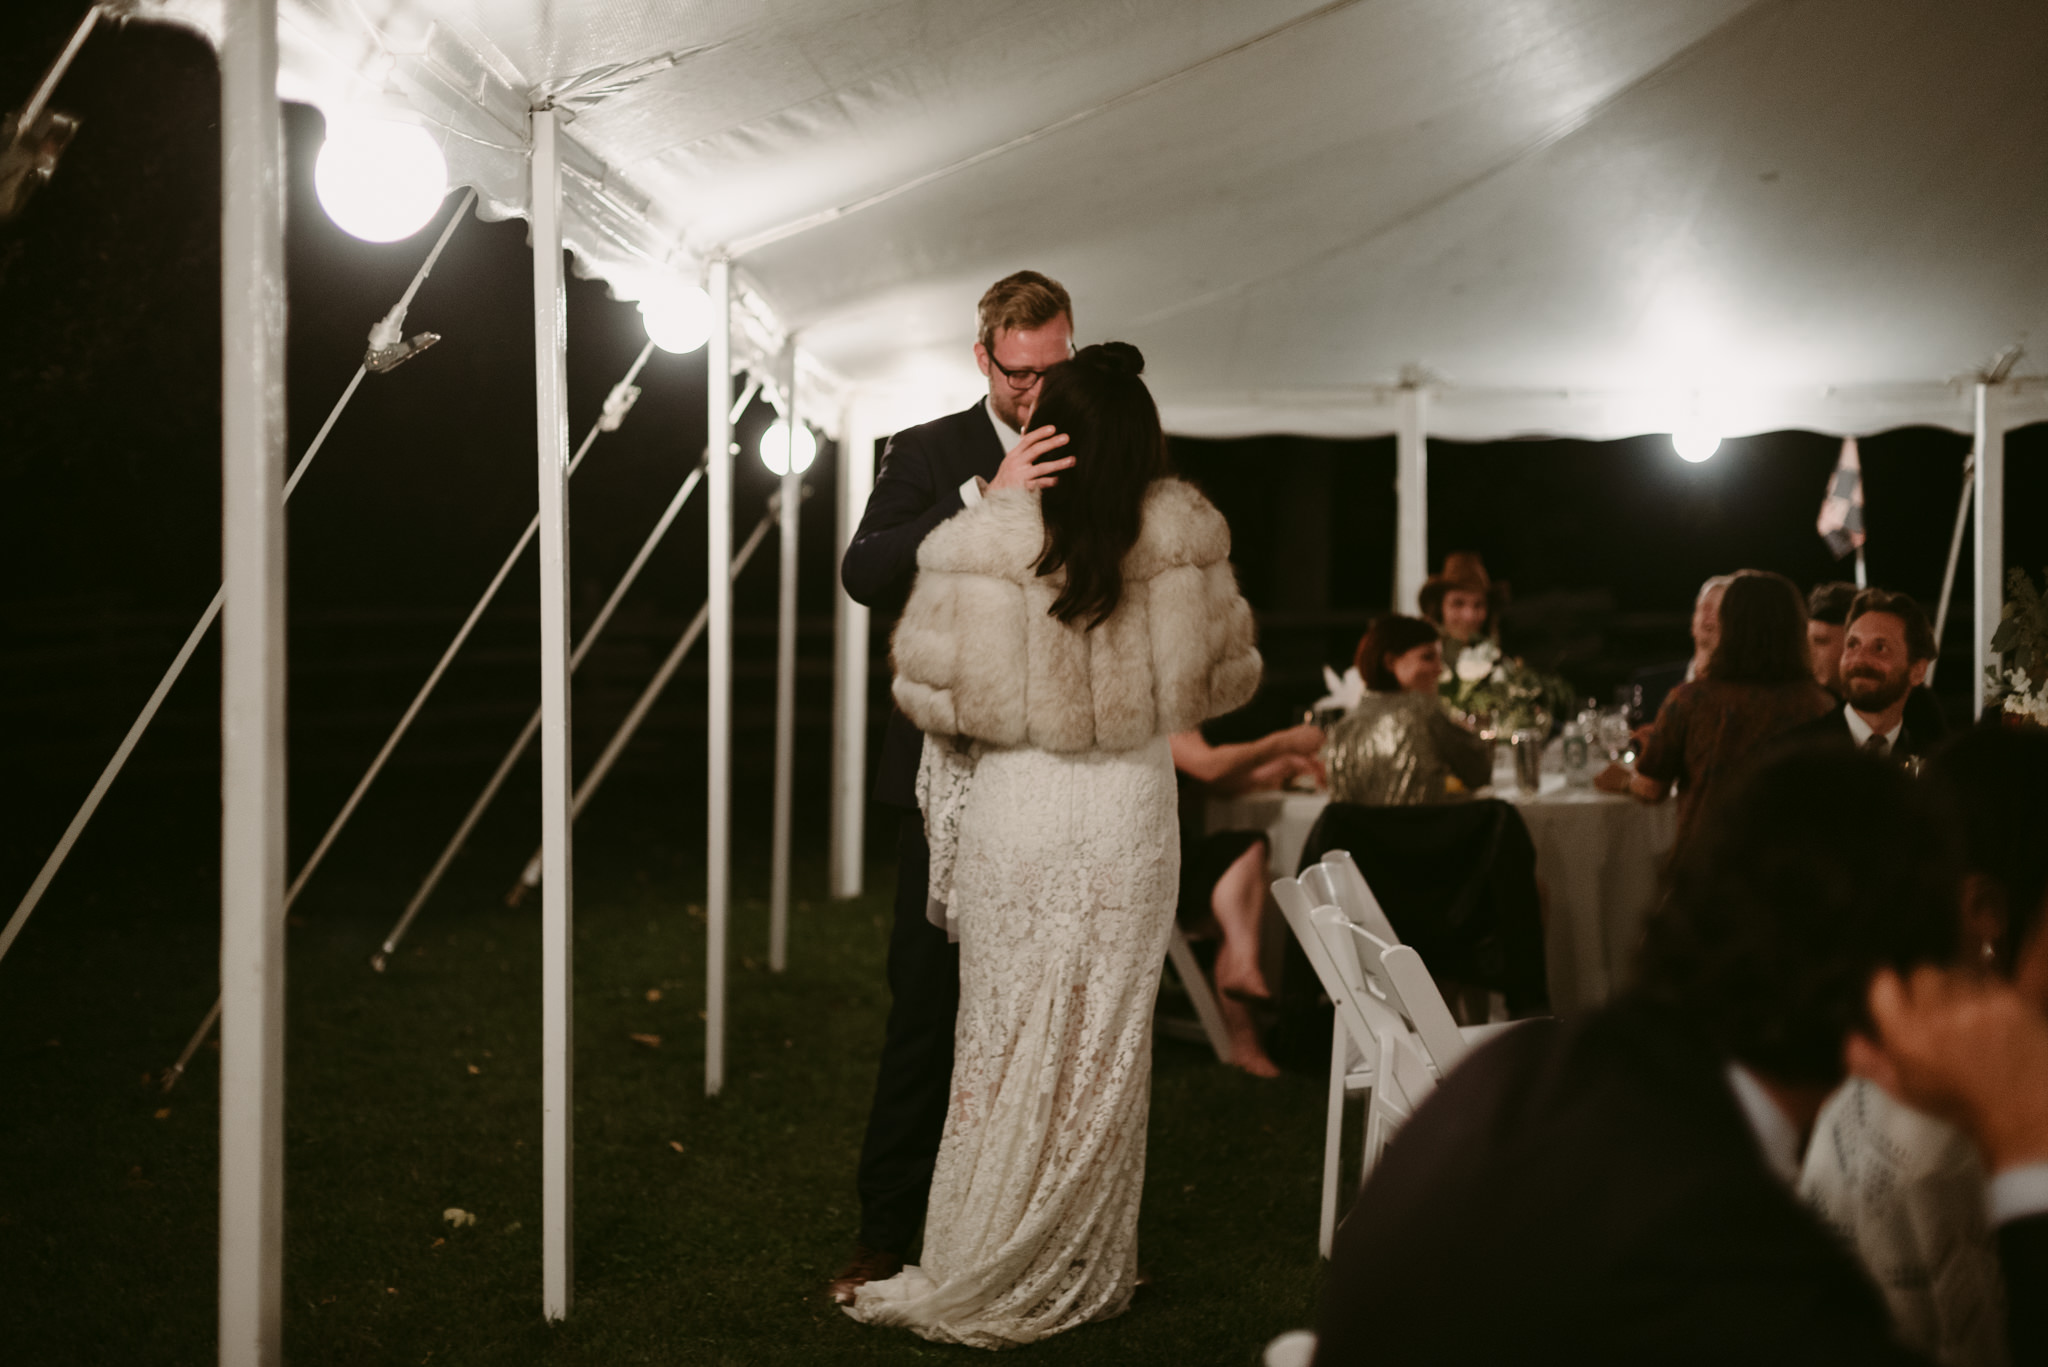 Bride and groom kissing in tent at wedding reception